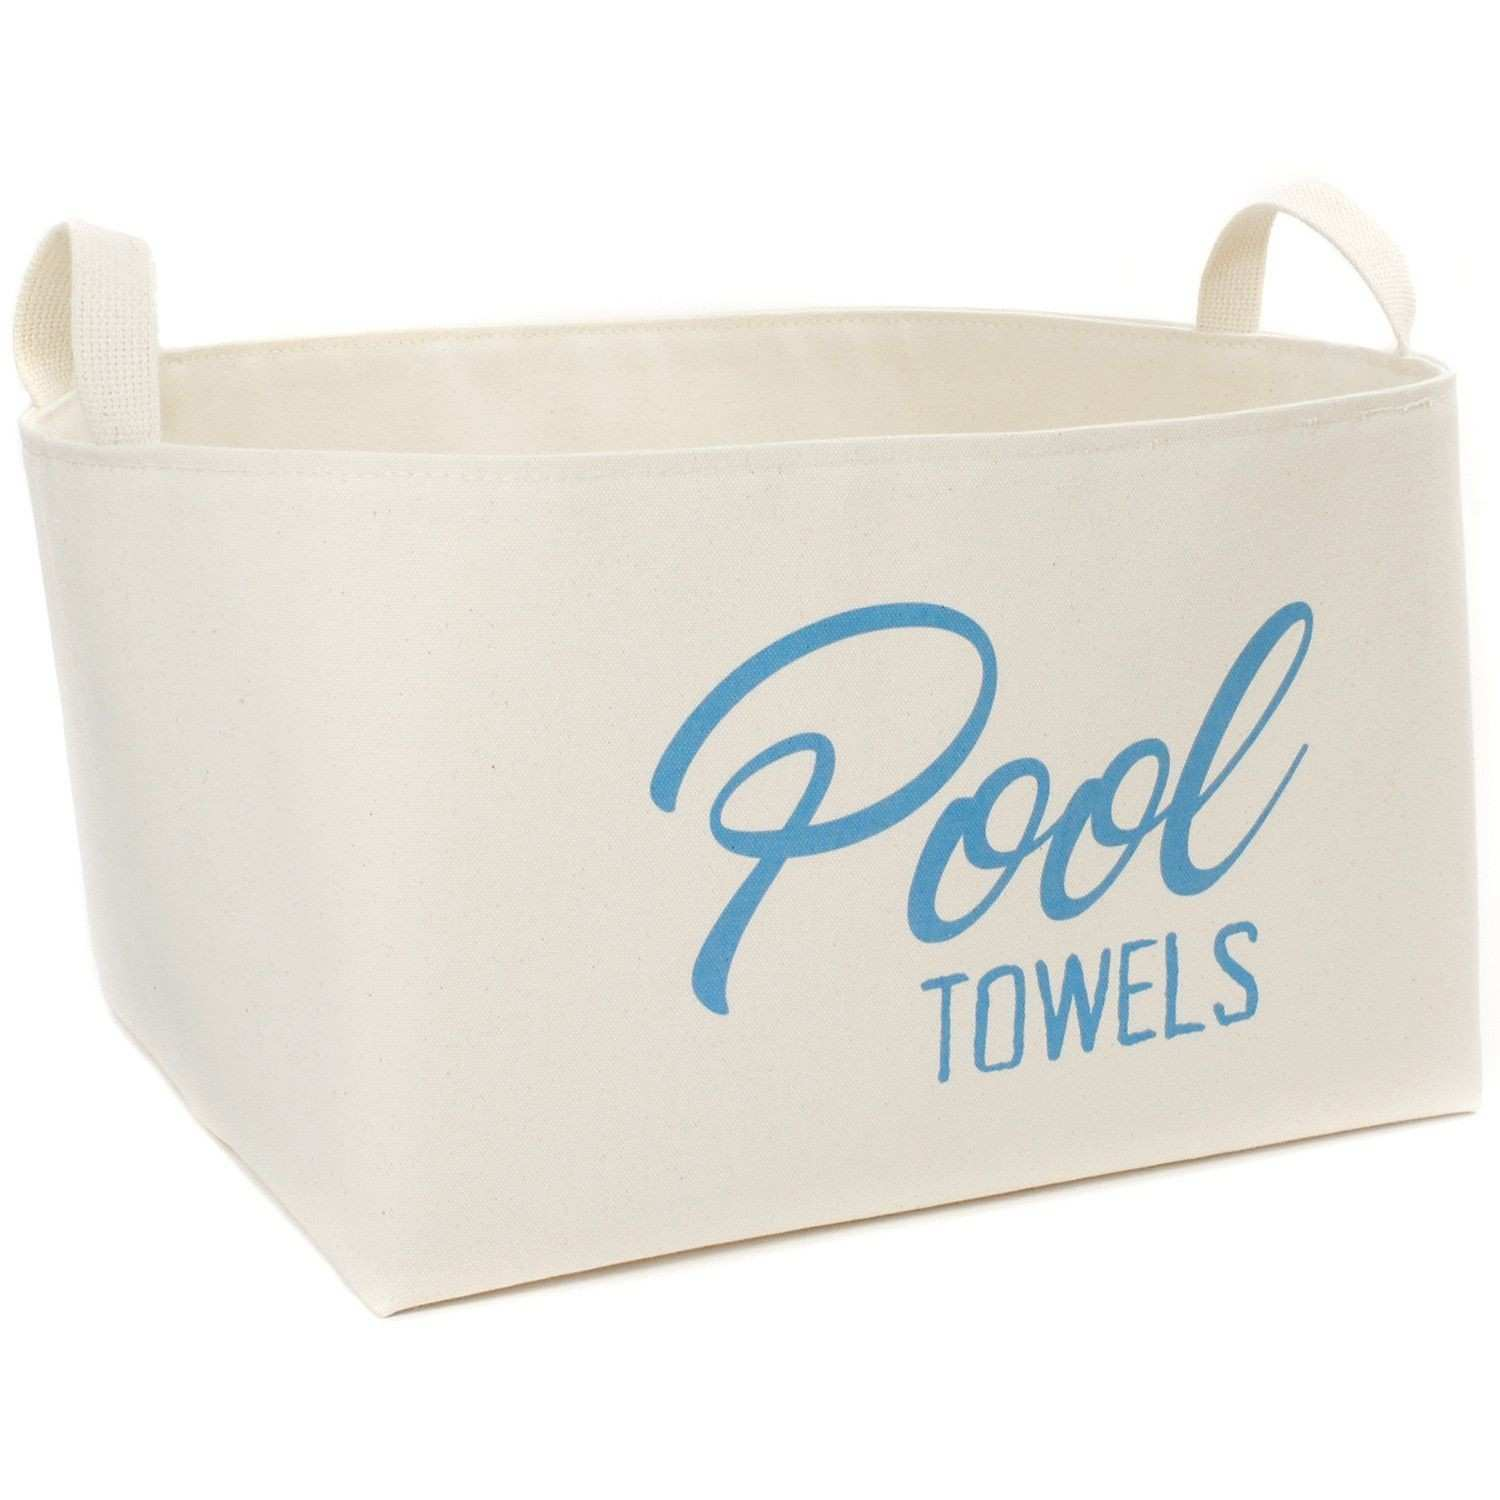 Stack your pool towels in this stylish extra large canvas storage